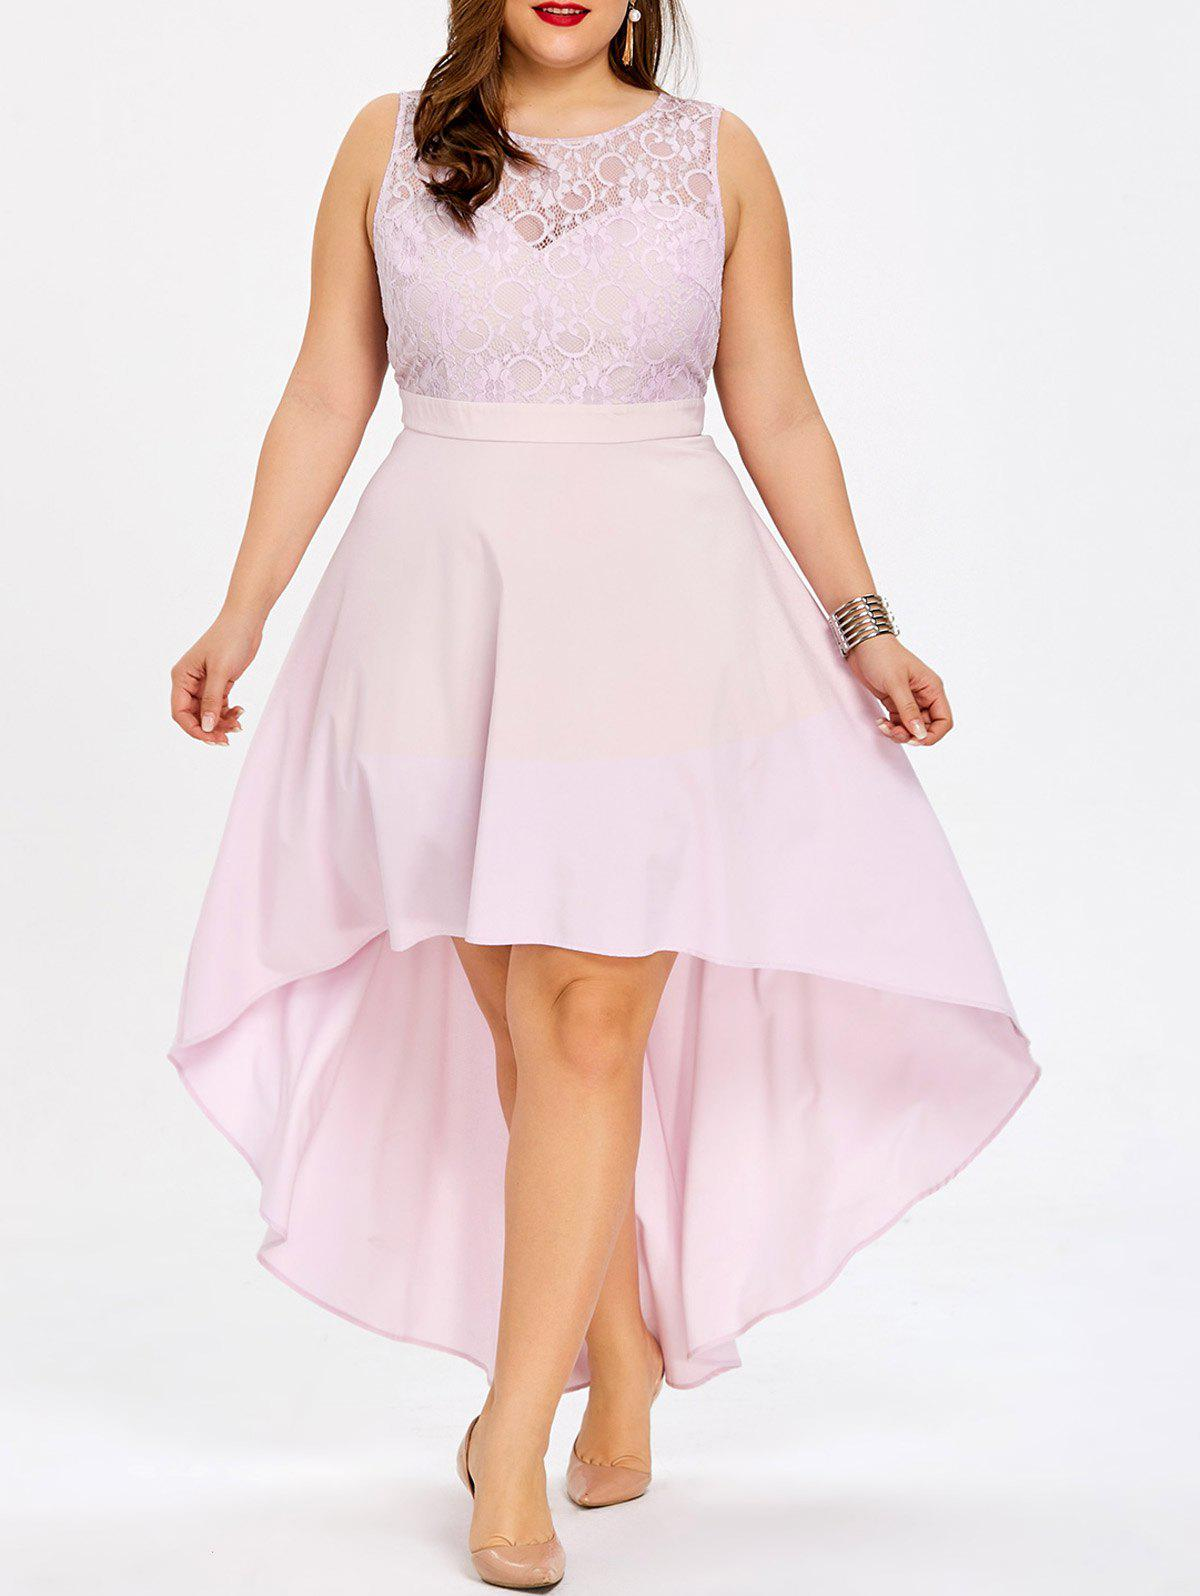 S Plus Size Lace Panel High Low Bridesmaid Dress